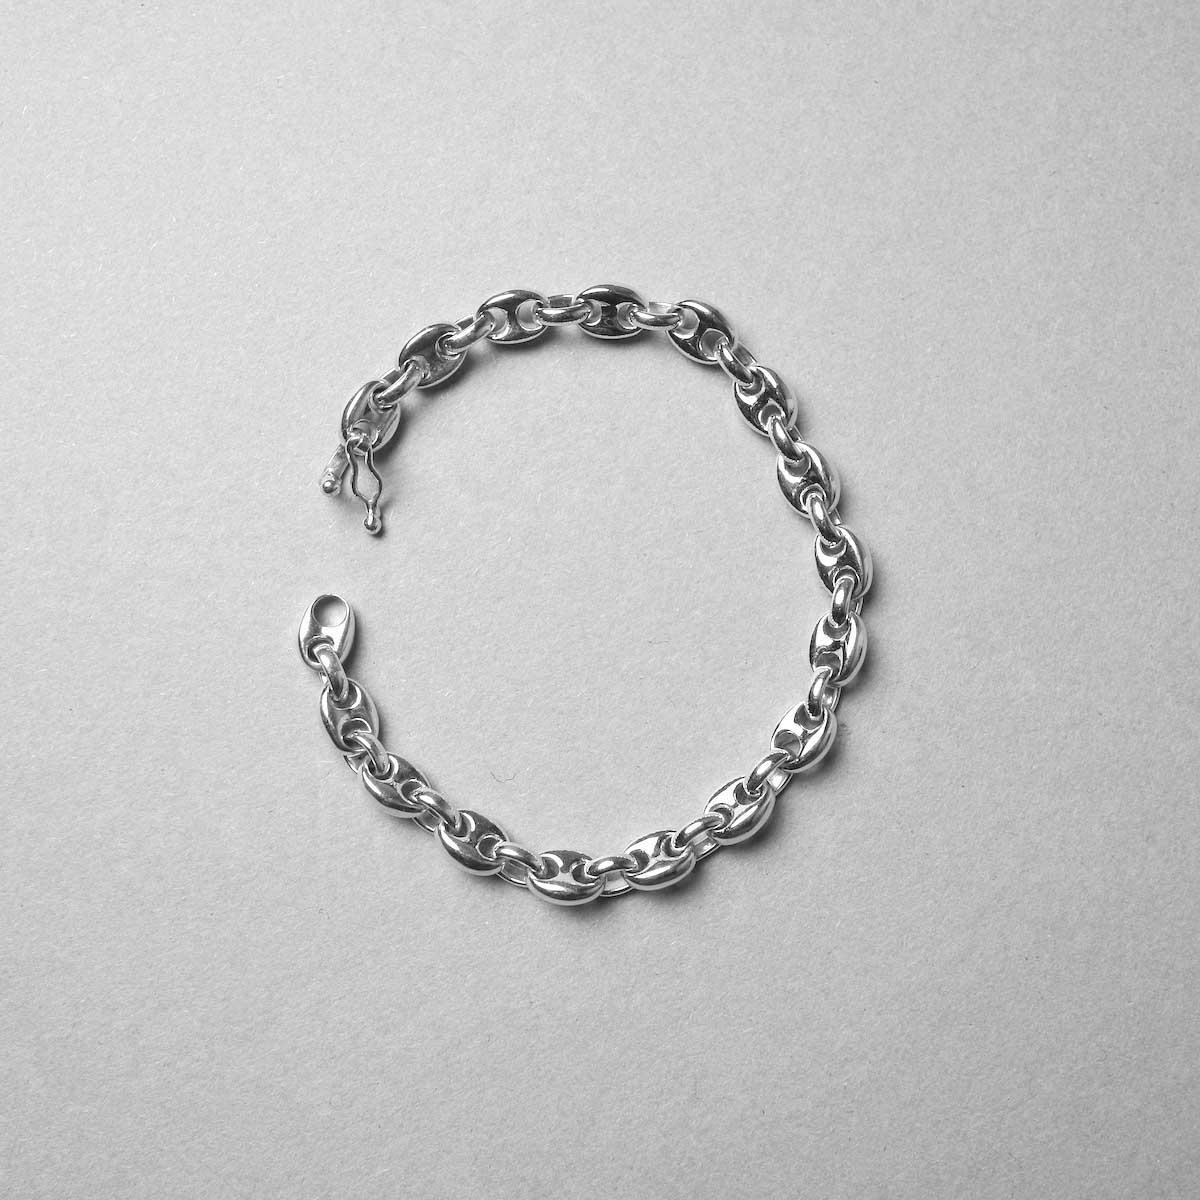 FIFTH GENERAL STORE / Special-001 Silver Chain Bracelet (6mm)